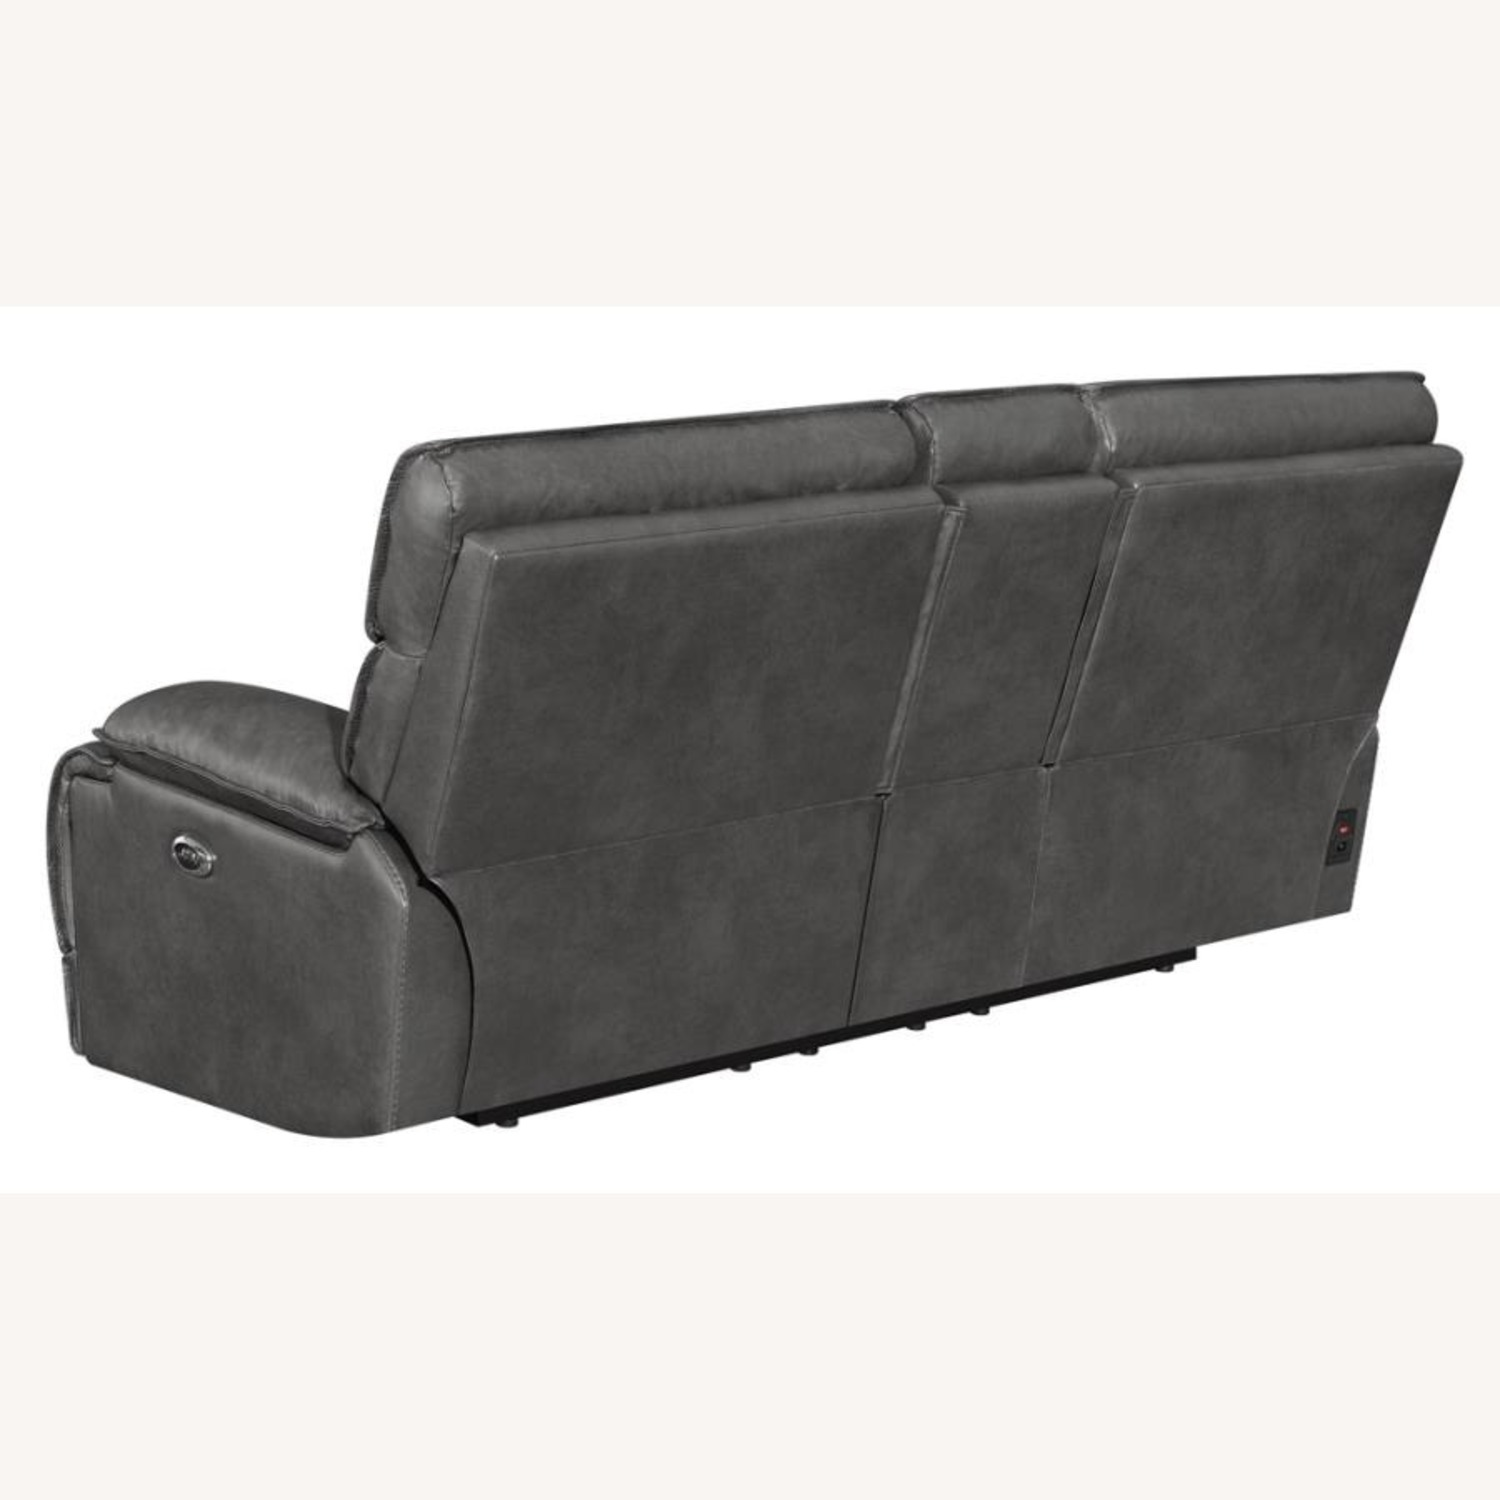 Power Recline Loveseat In Charcoal Leather - image-4